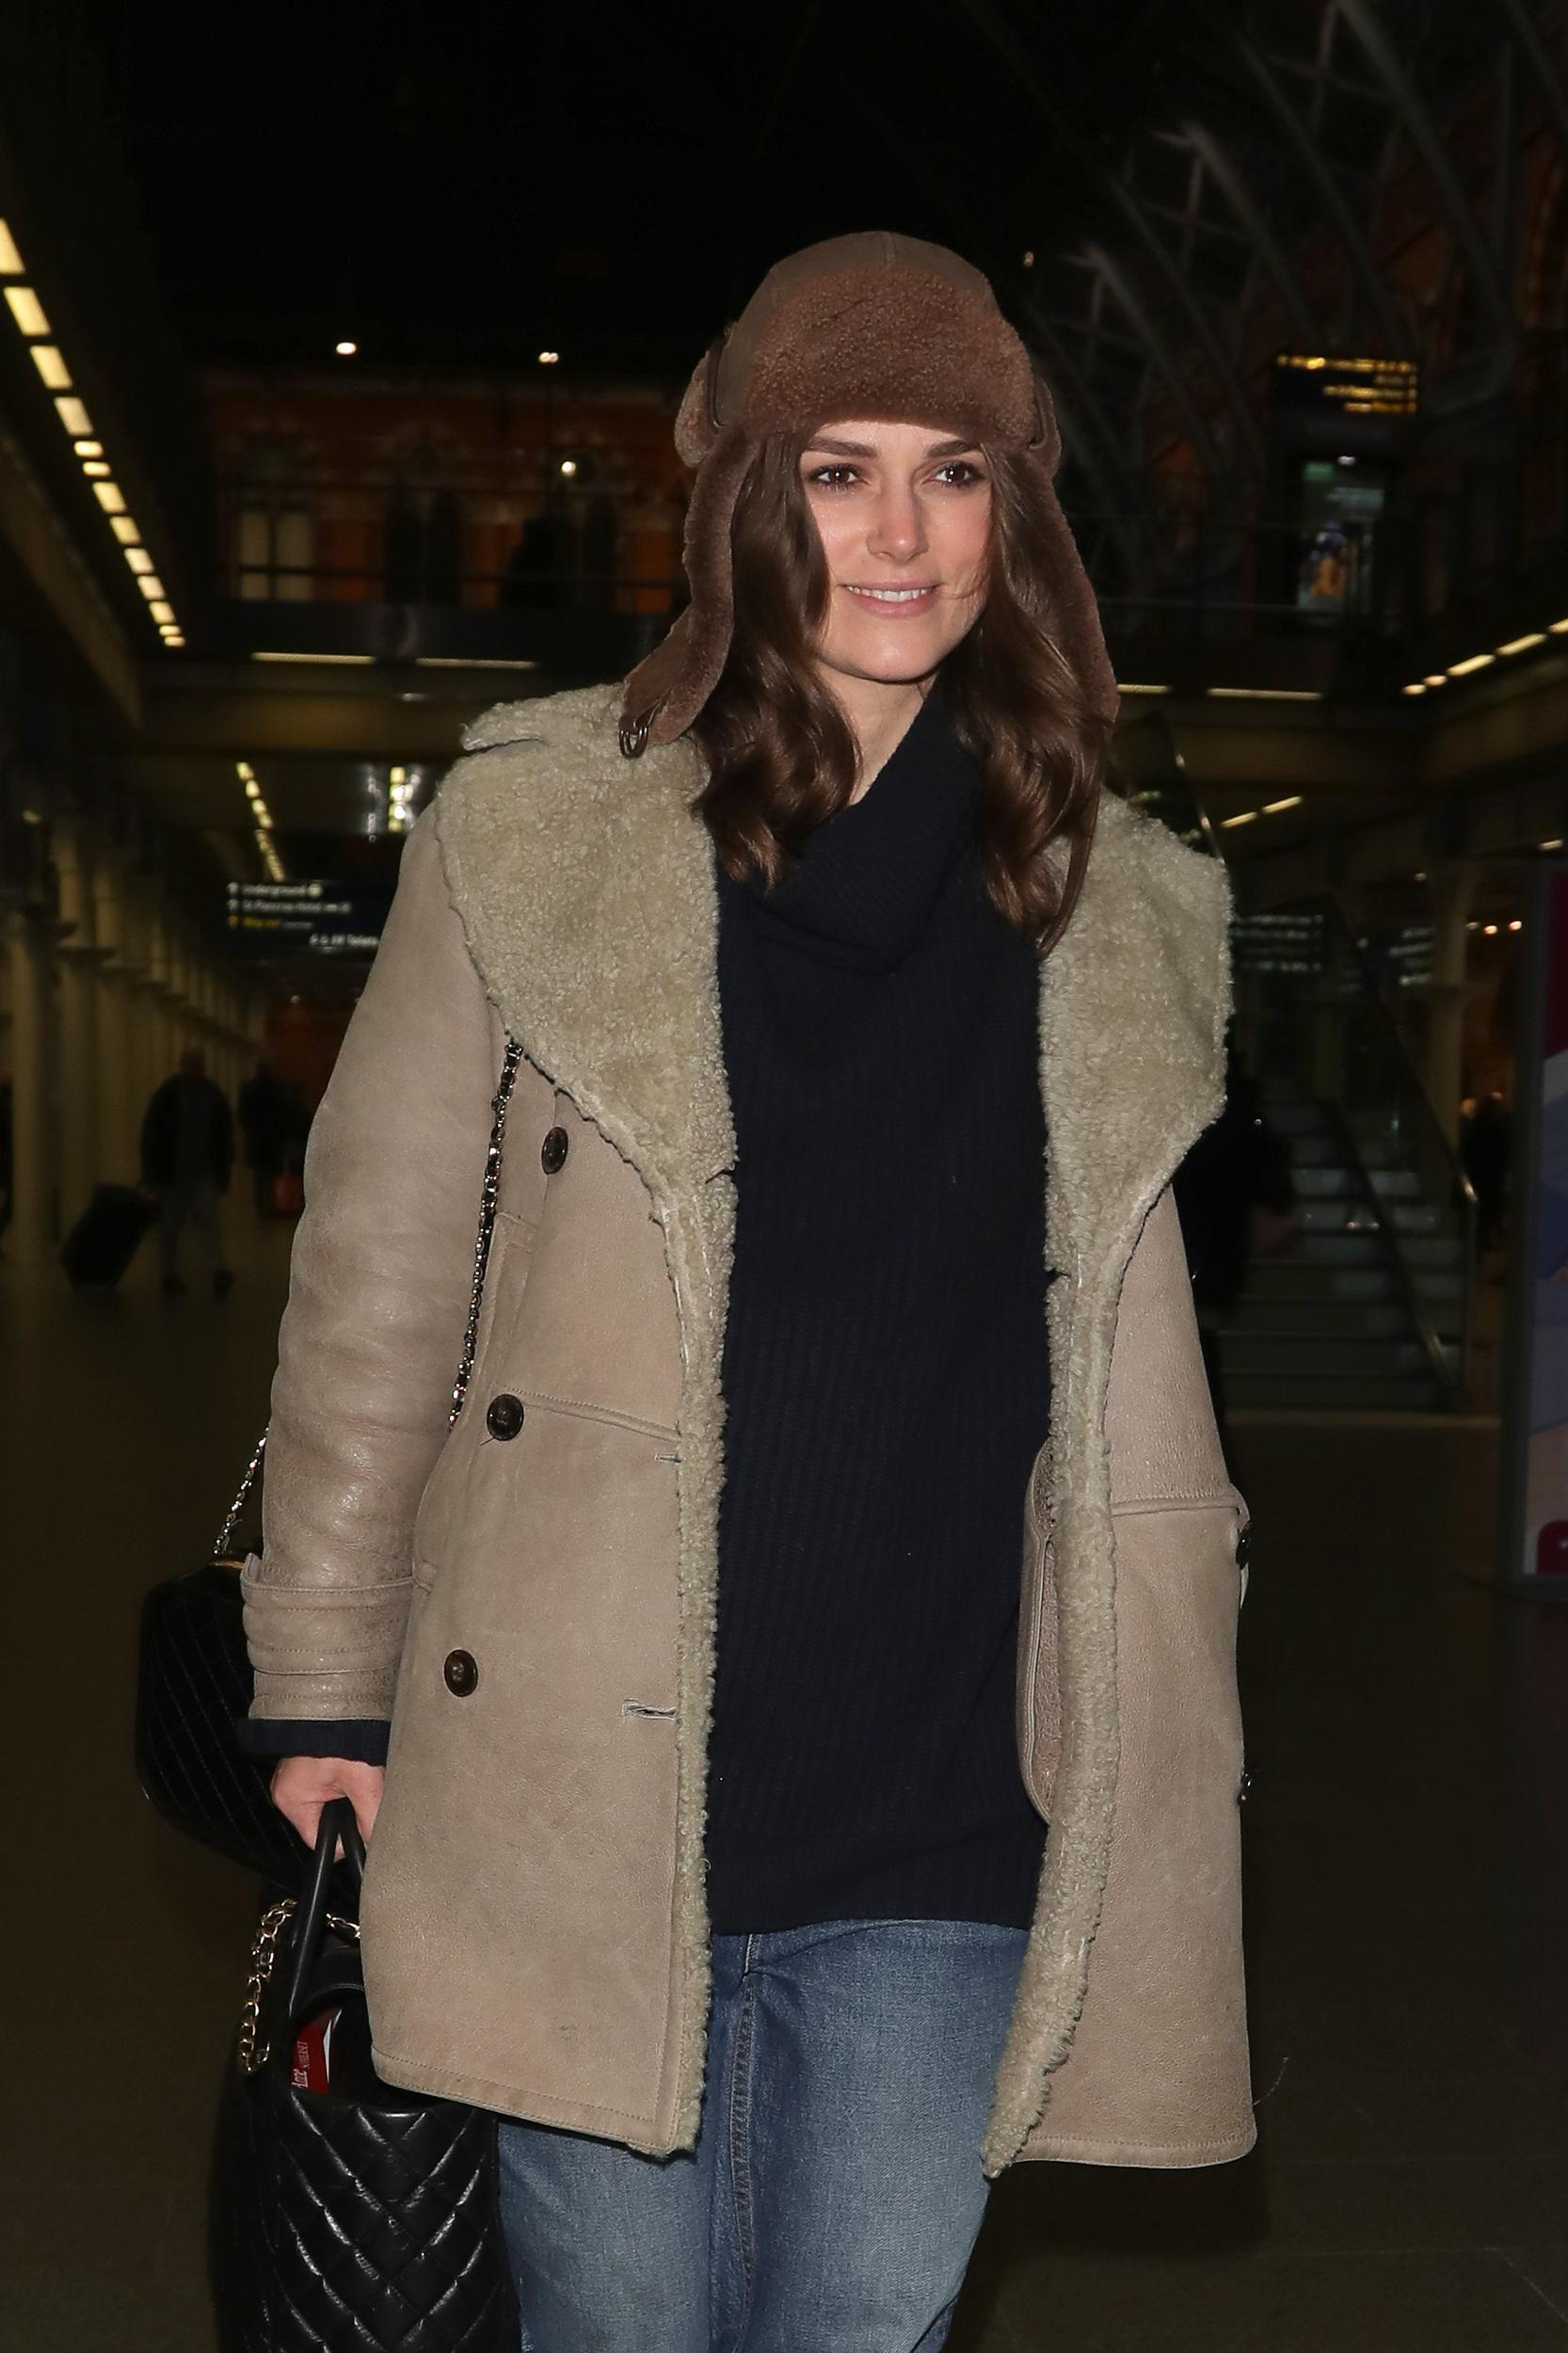 LONDON, ENGLAND - JANUARY 10:  Keira Knightley arriving at St Pancras Station on January 10, 2019 in London, England. (Photo by Mark R. Milan/GC Images)